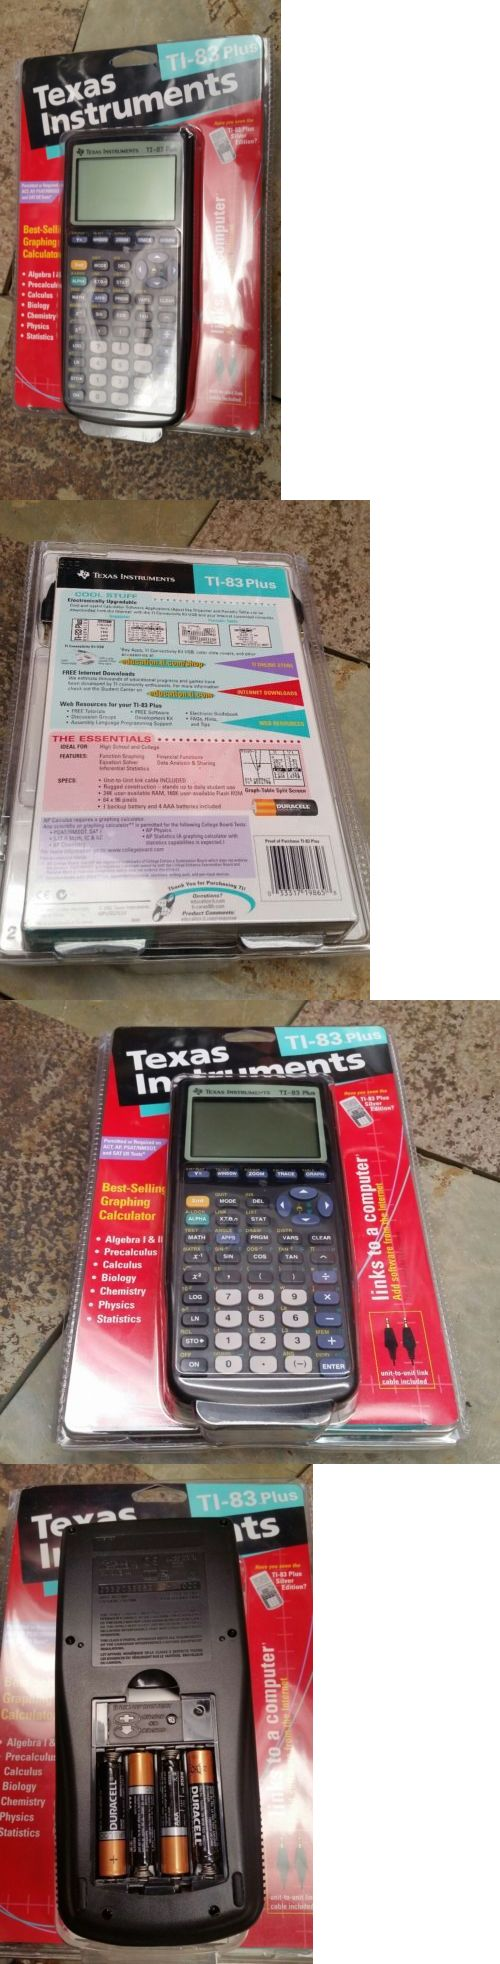 Calculators Texas Instruments Ti 83 Plus Graphing Calculator Buy It Now  Only Download Image How To How To Calculate Standard Deviation In